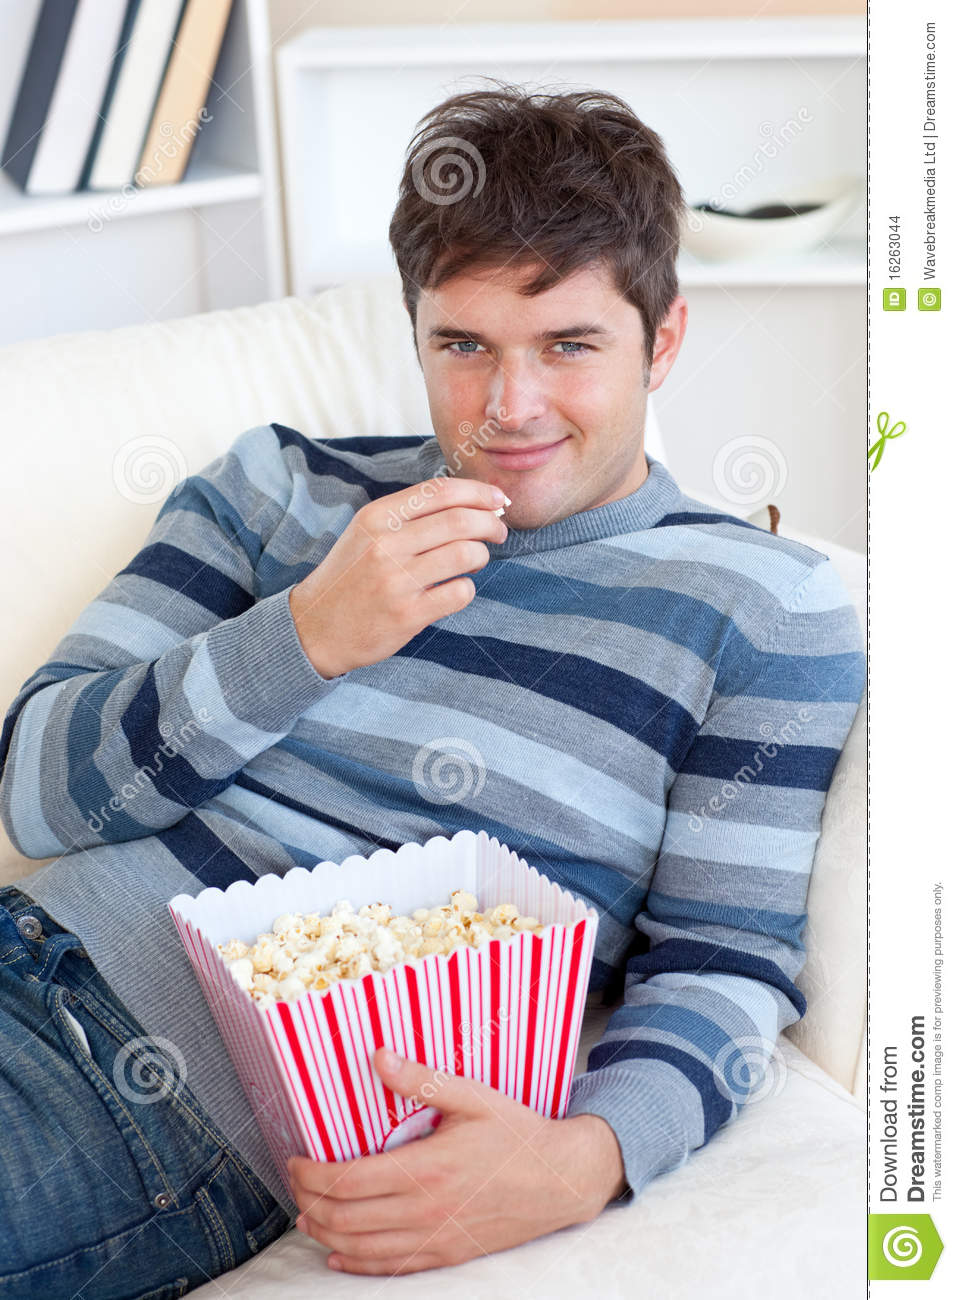 handsome-young-man-eating-popcorn-lying-